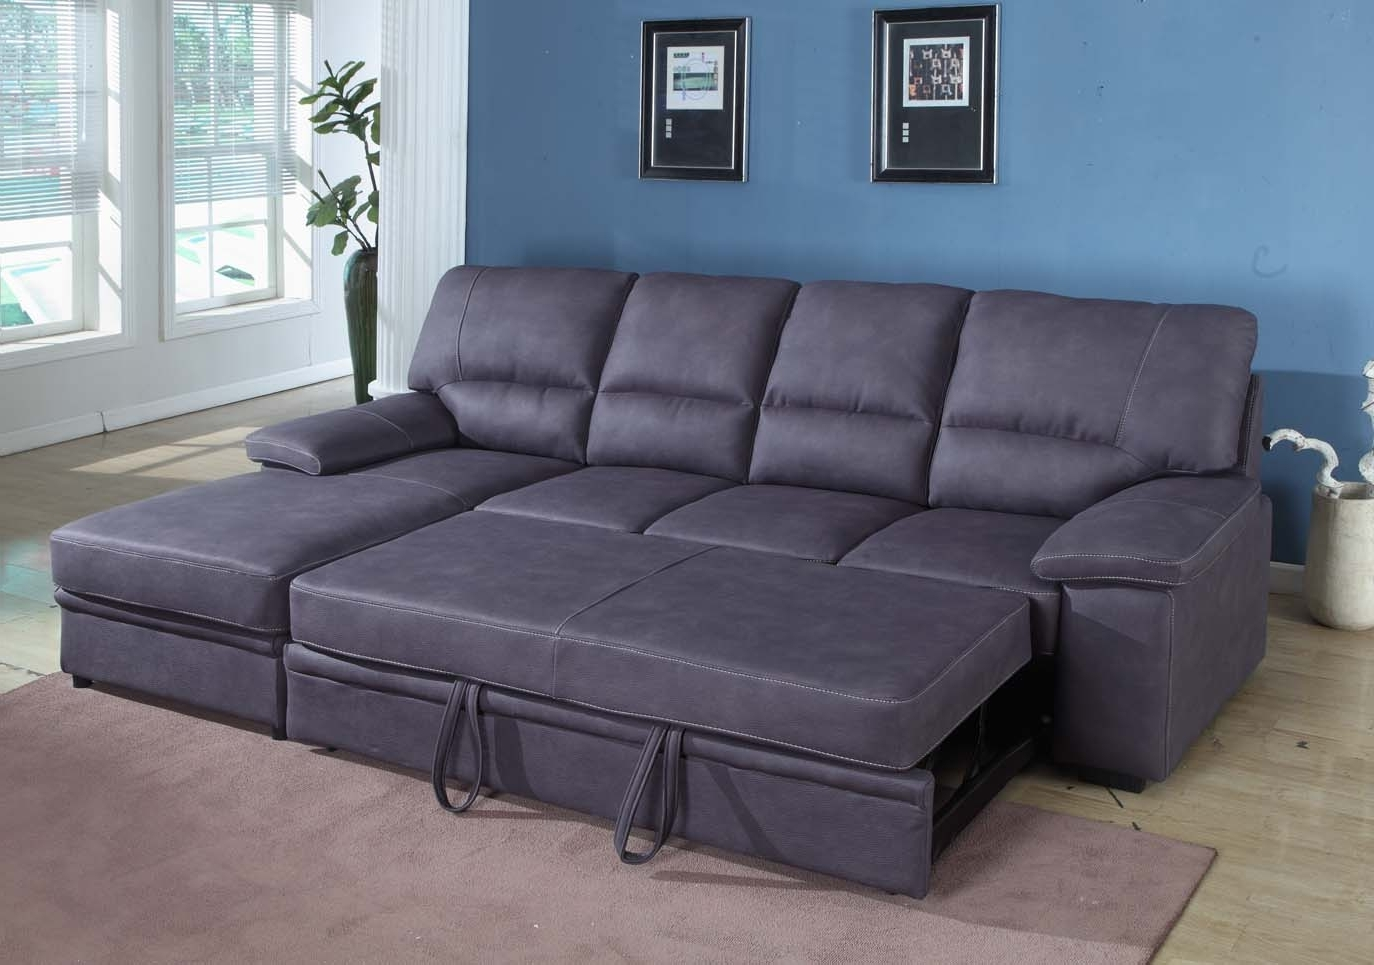 Current Furniture : Sectional Sofa Nj Best Sectional Sofa Under 500 For Jacksonville Fl Sectional Sofas (View 2 of 20)